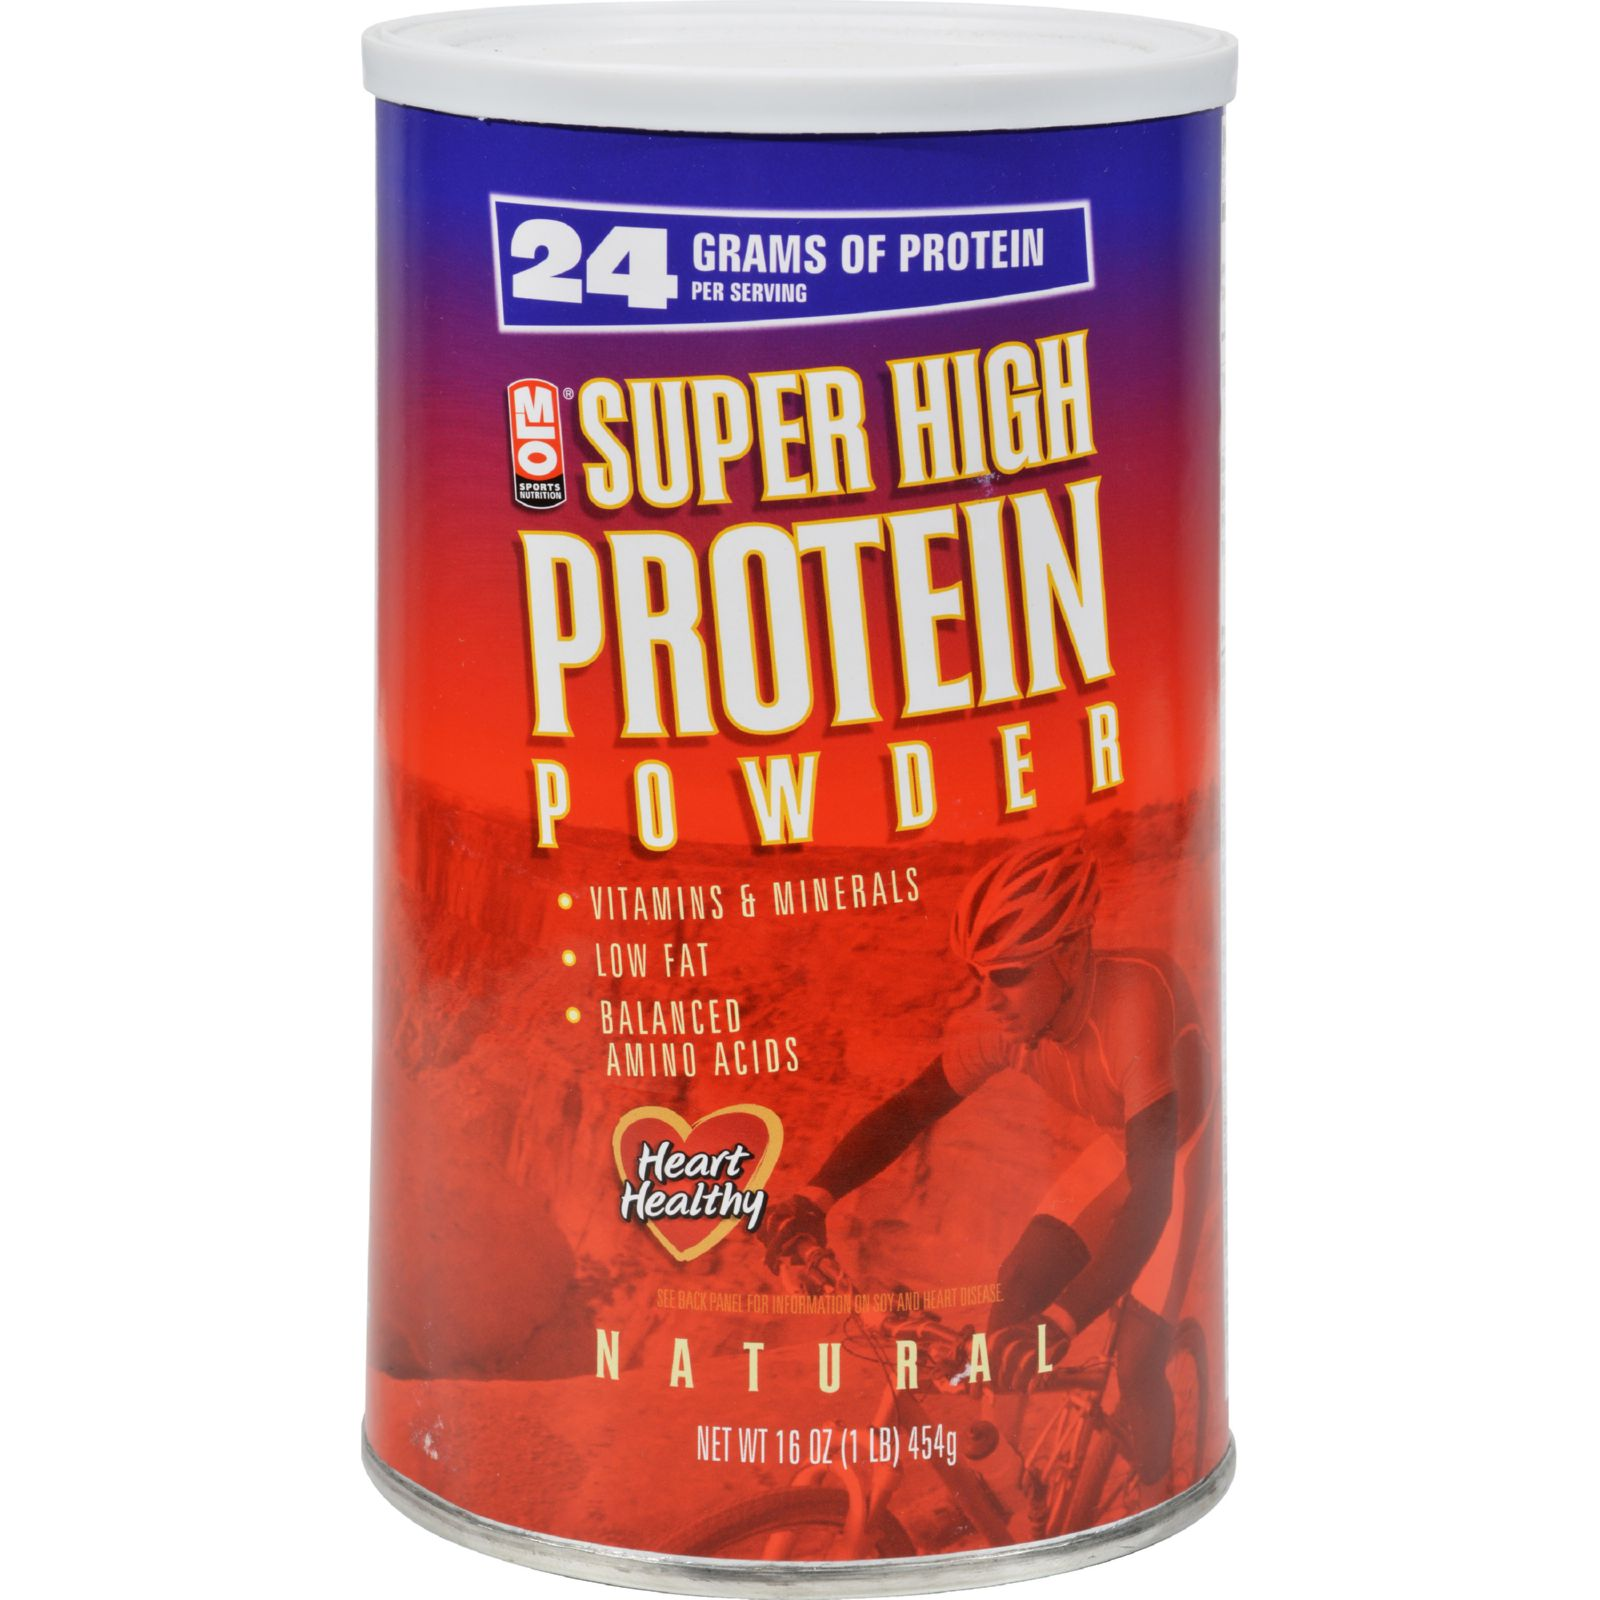 Mlo Super High Protein Powder - 16 Oz